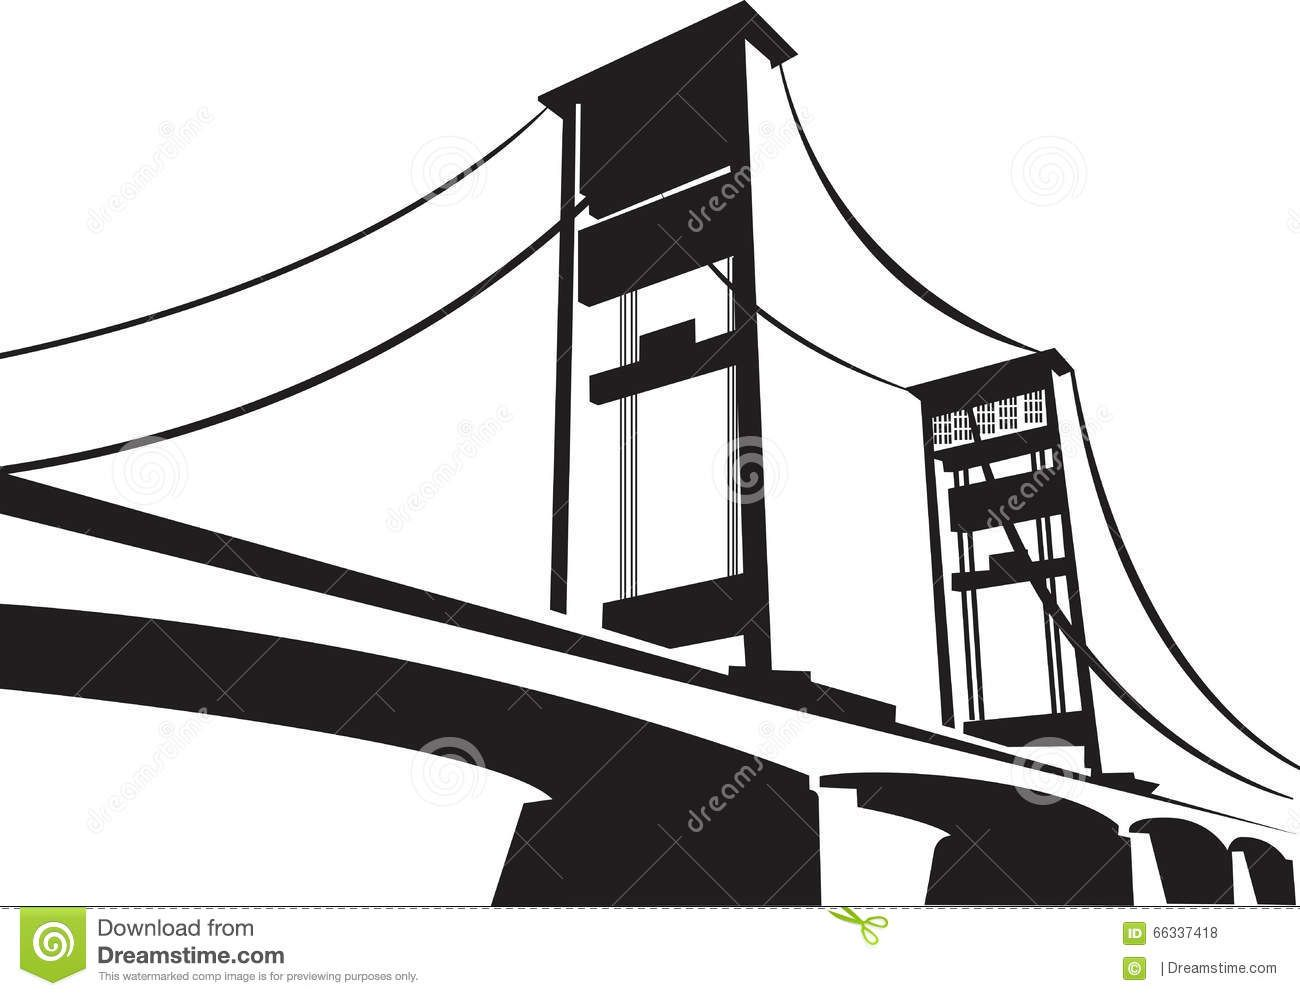 Ampera Bridge Palembang Sumatera Selatan Stock Vector Illustration Of Design Ampera 66337418 Palembang Vector Illustration Illustration